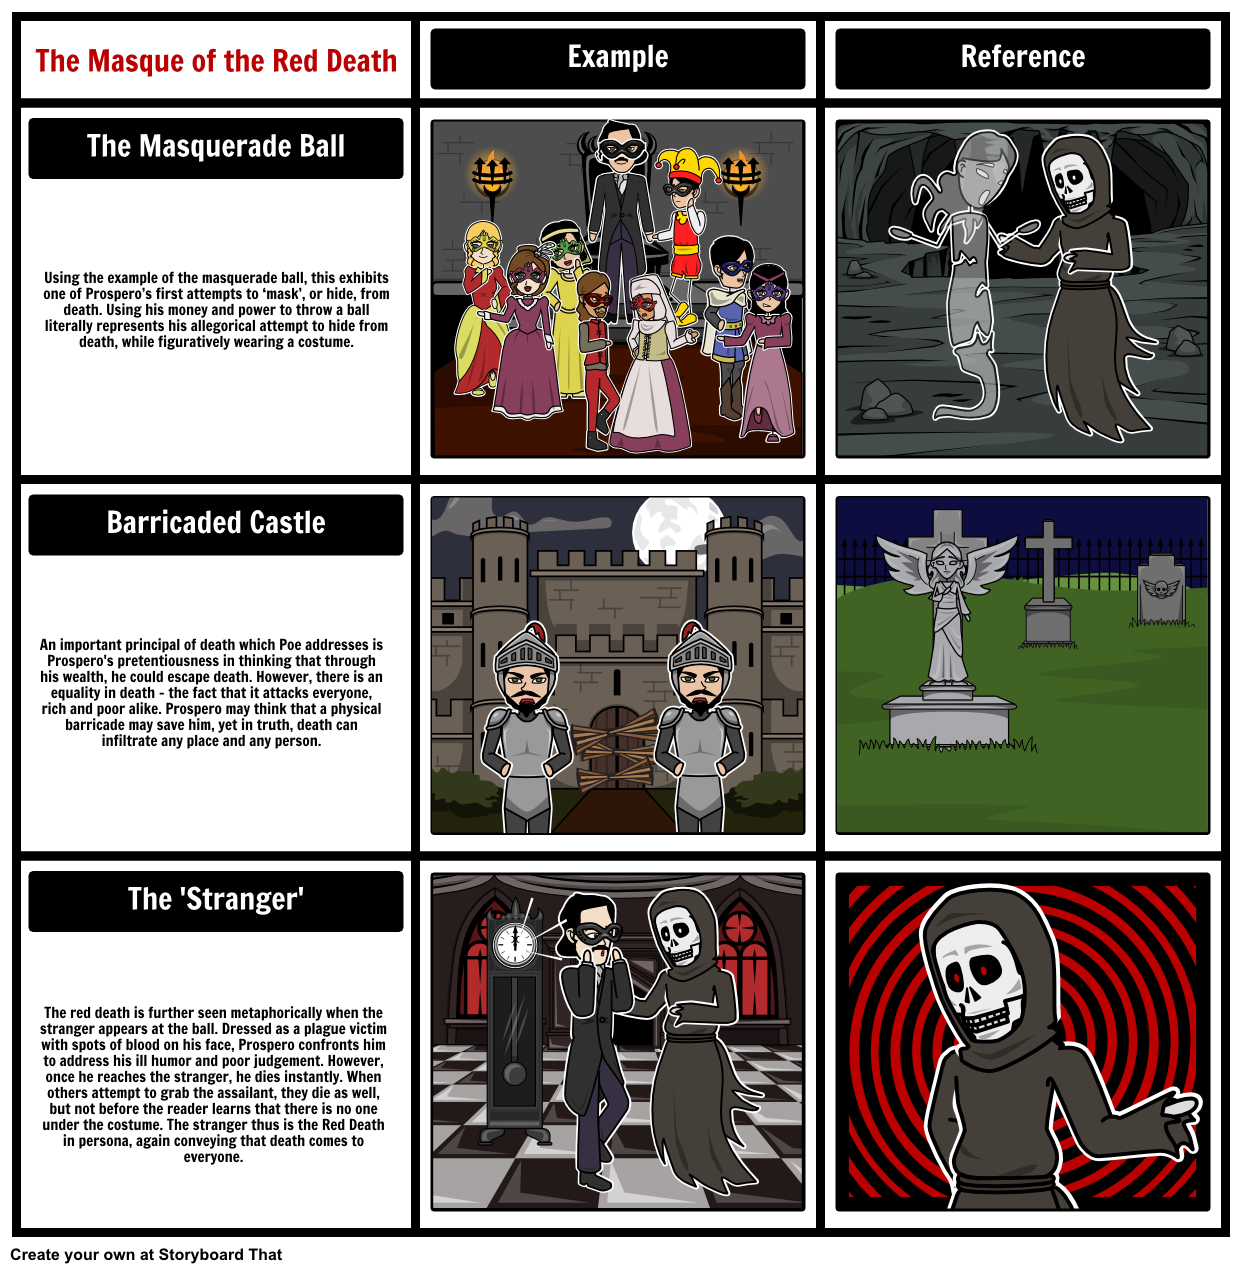 worksheet The Masque Of The Red Death Literary Analysis Worksheet in this activity teachers can ask students to create a storyboard the masque of red death by edgar allan poe allegory th